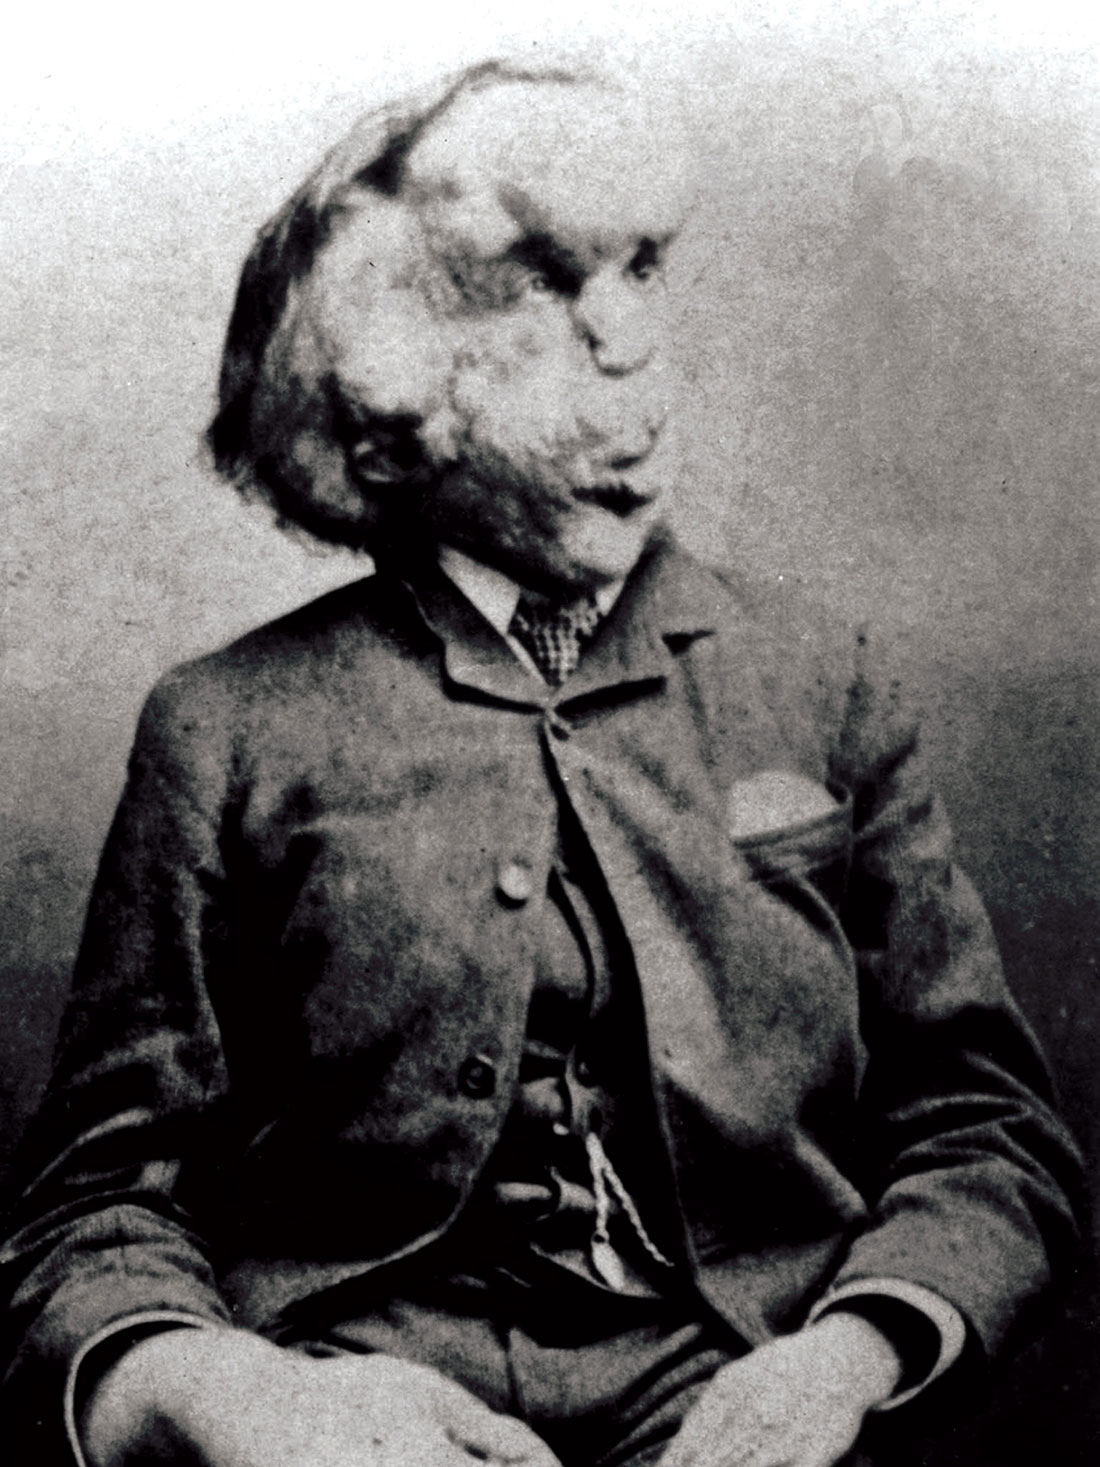 Joseph Carey Merrick, 'the Elephant Man', late 19th century.